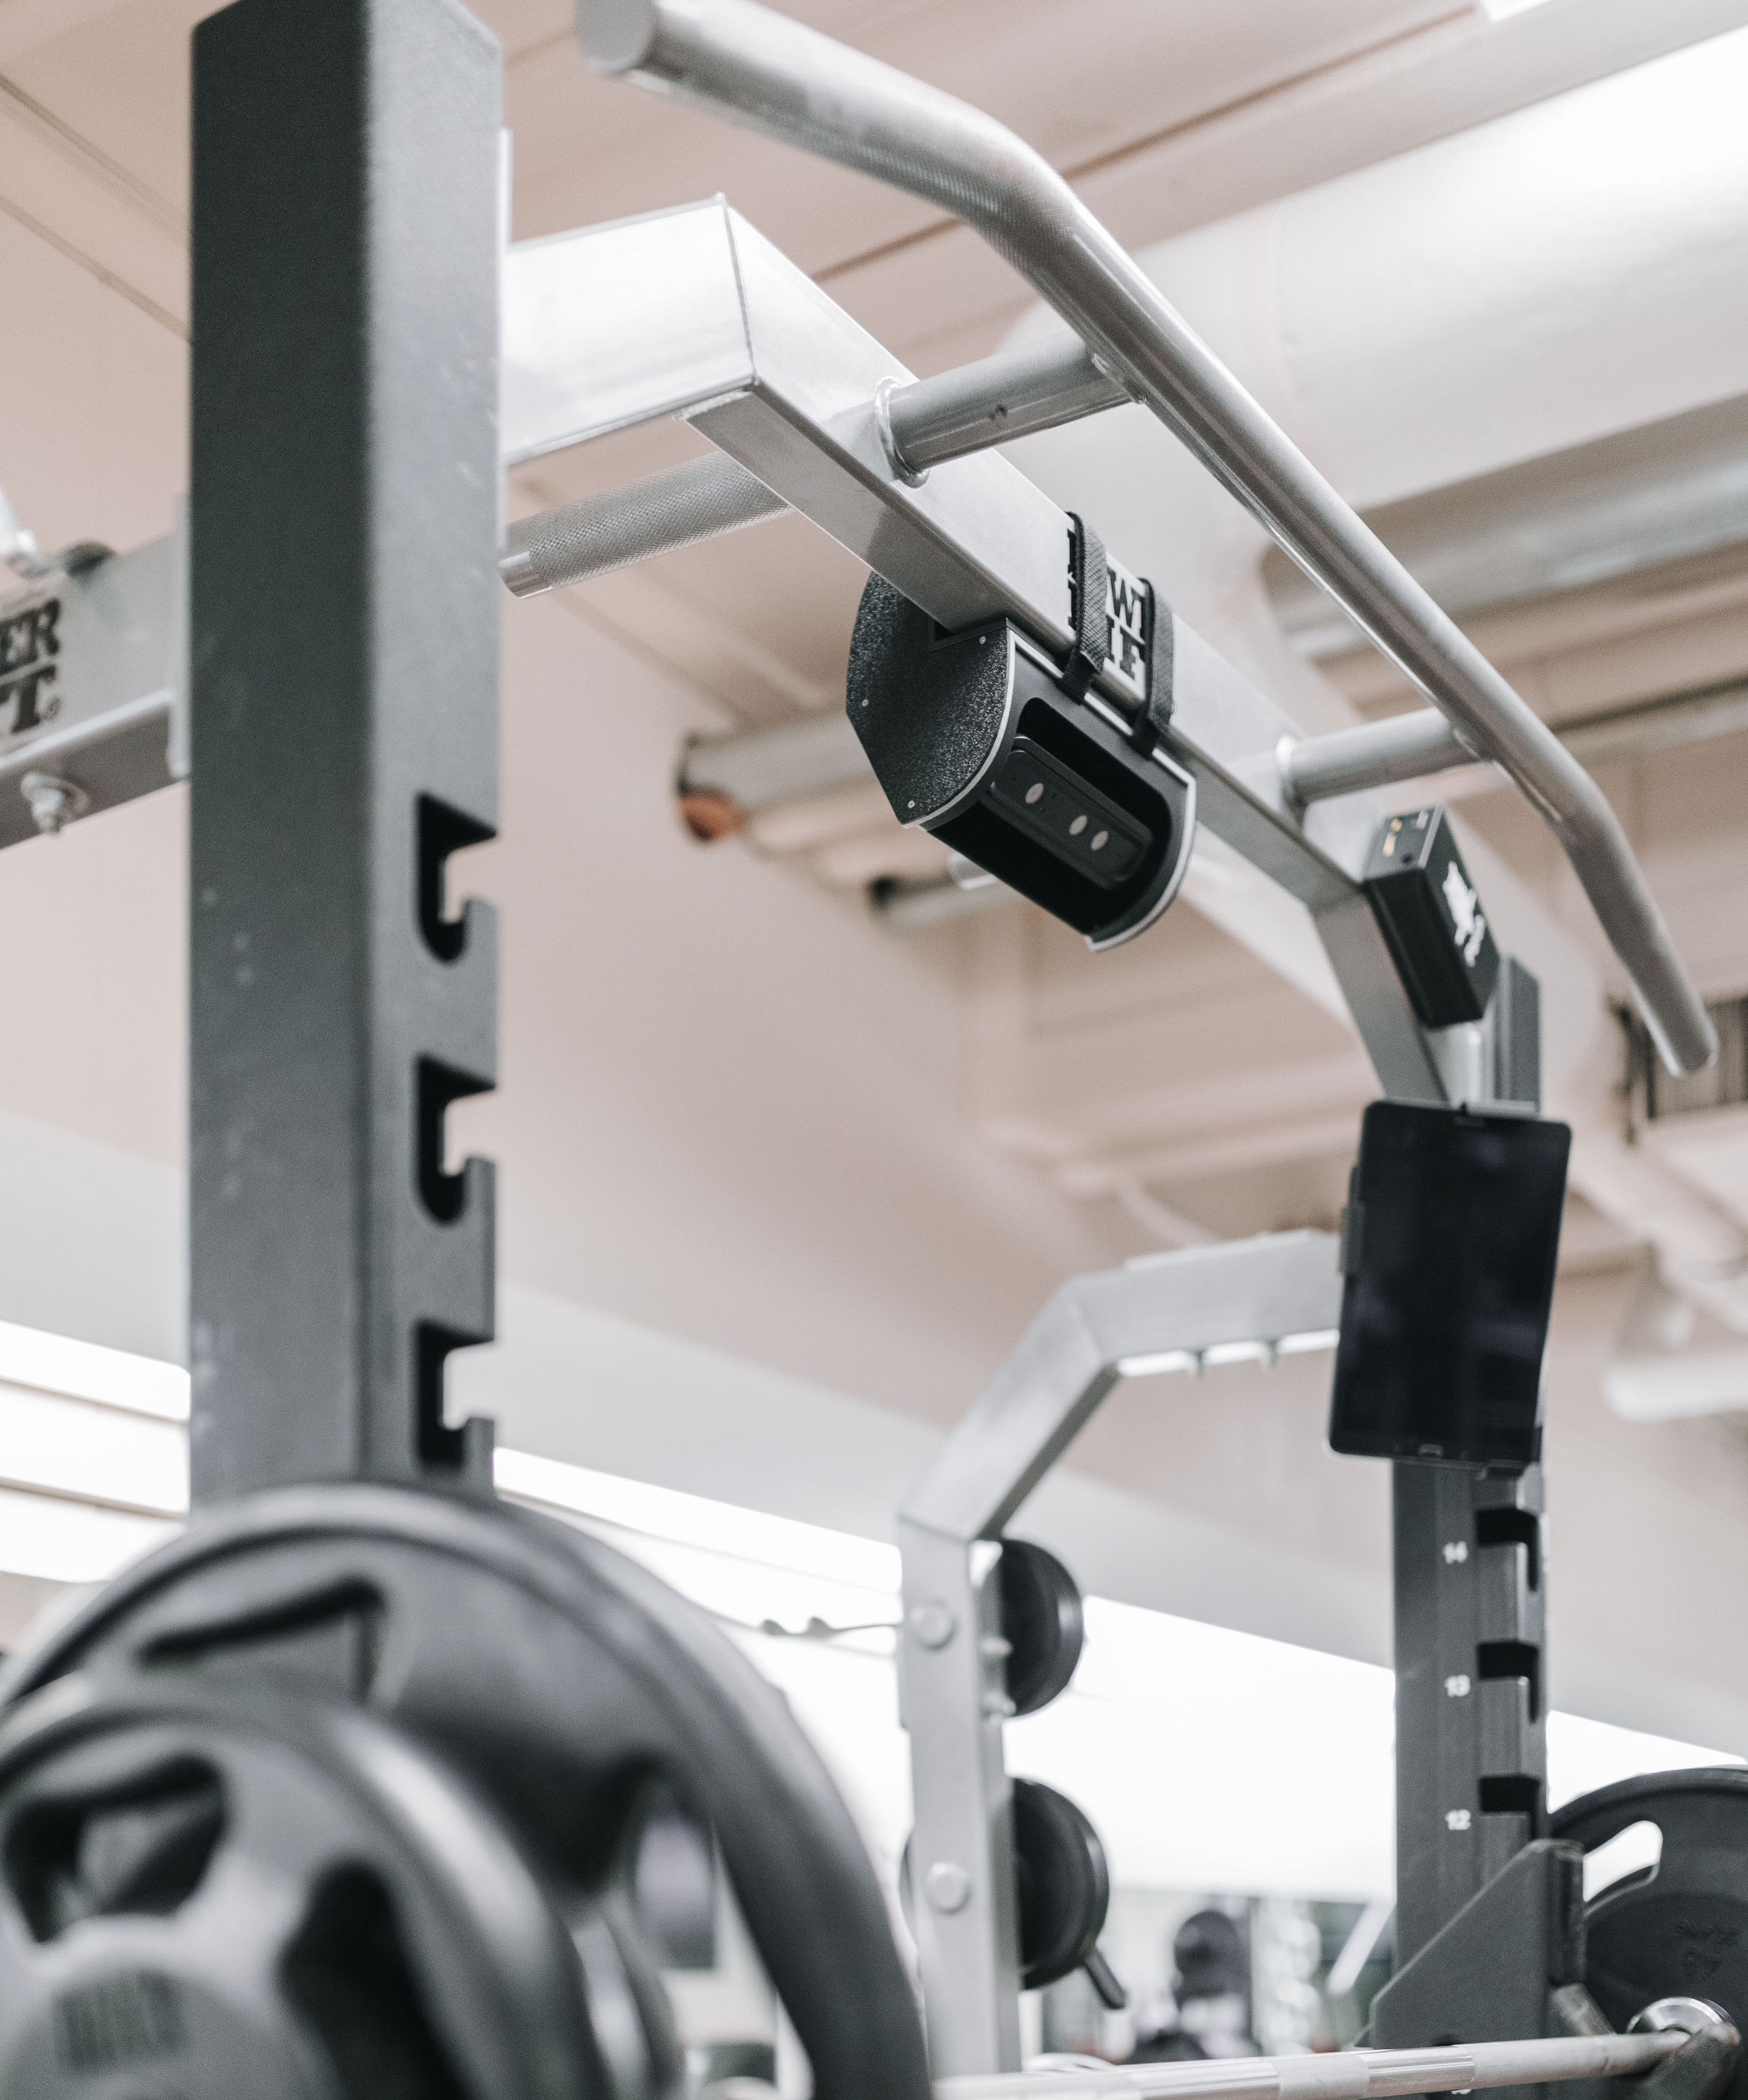 Perched on a rack to optimize your performance without interrupting your workout flow